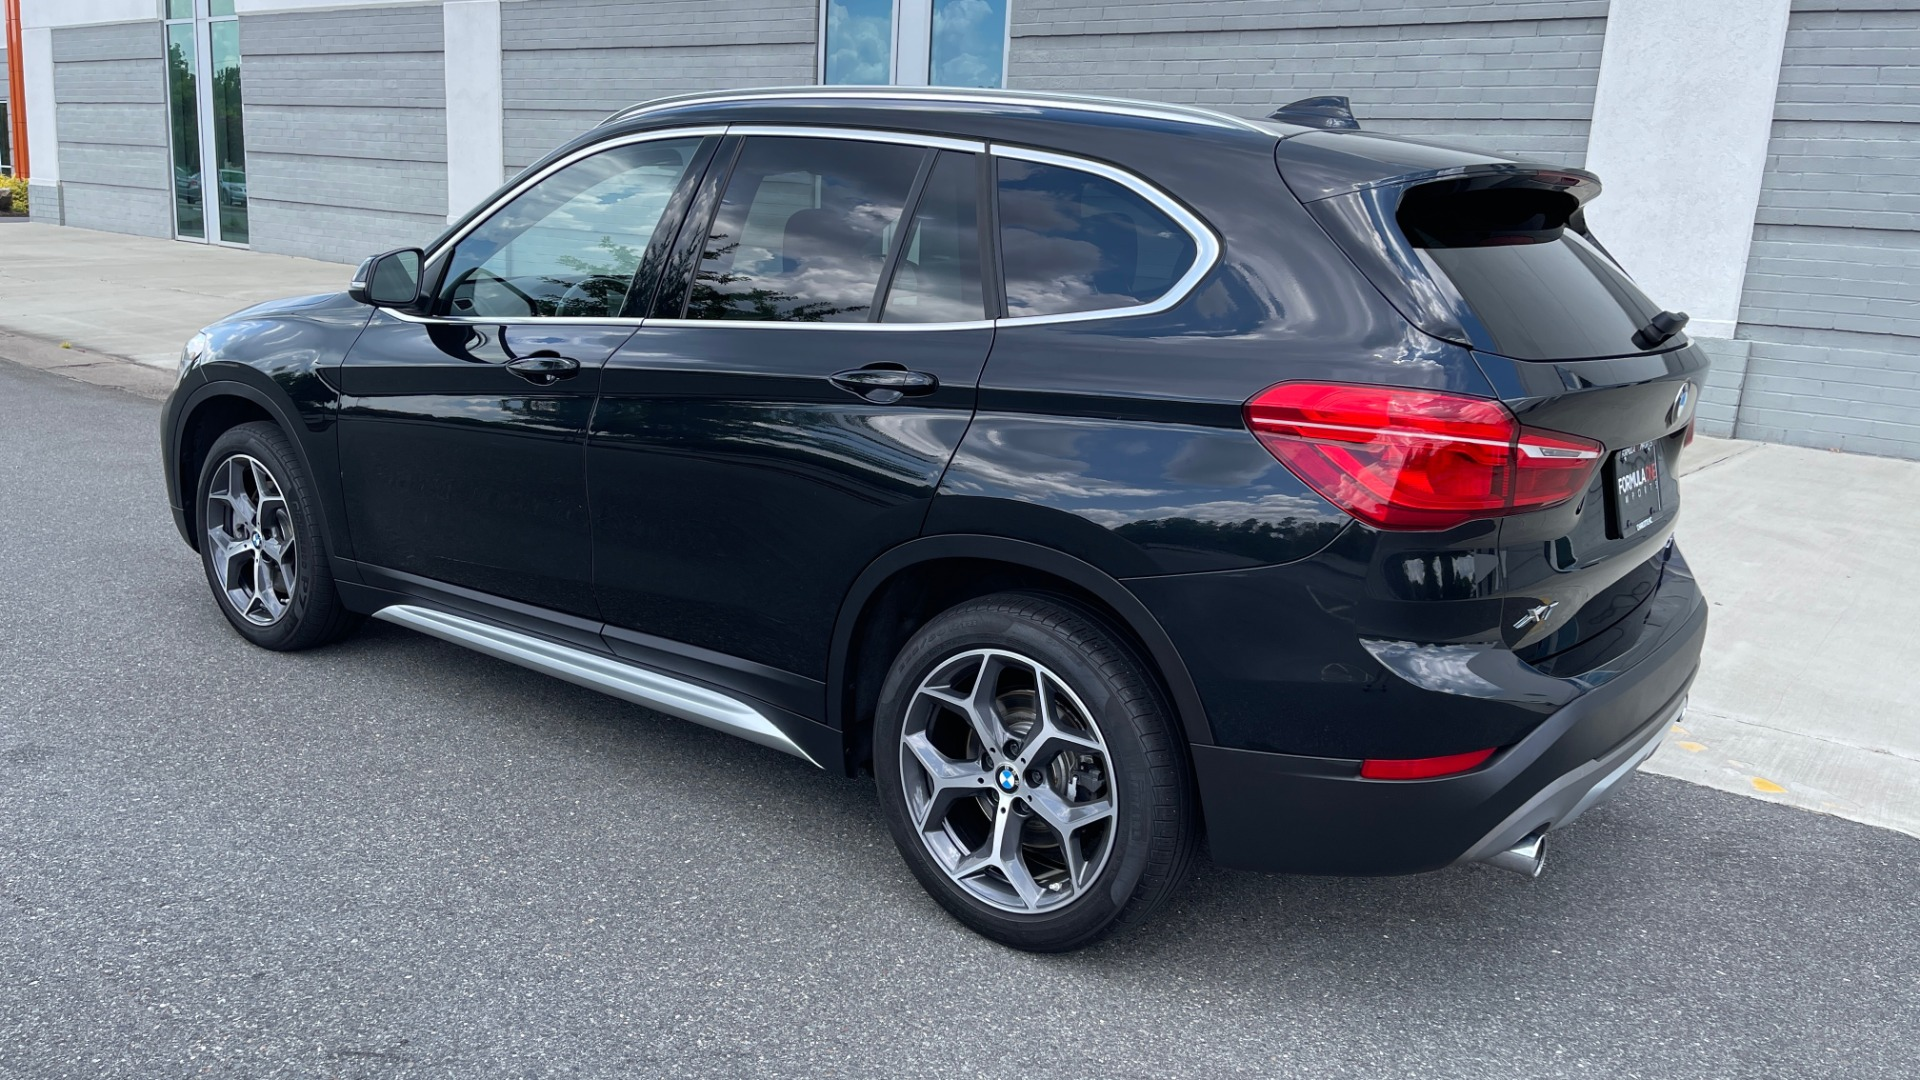 Used 2018 BMW X1 XDRIVE28I / NAV / CONV PKG / HTD STS / PANO-ROOF / REARVIEW for sale $29,995 at Formula Imports in Charlotte NC 28227 5